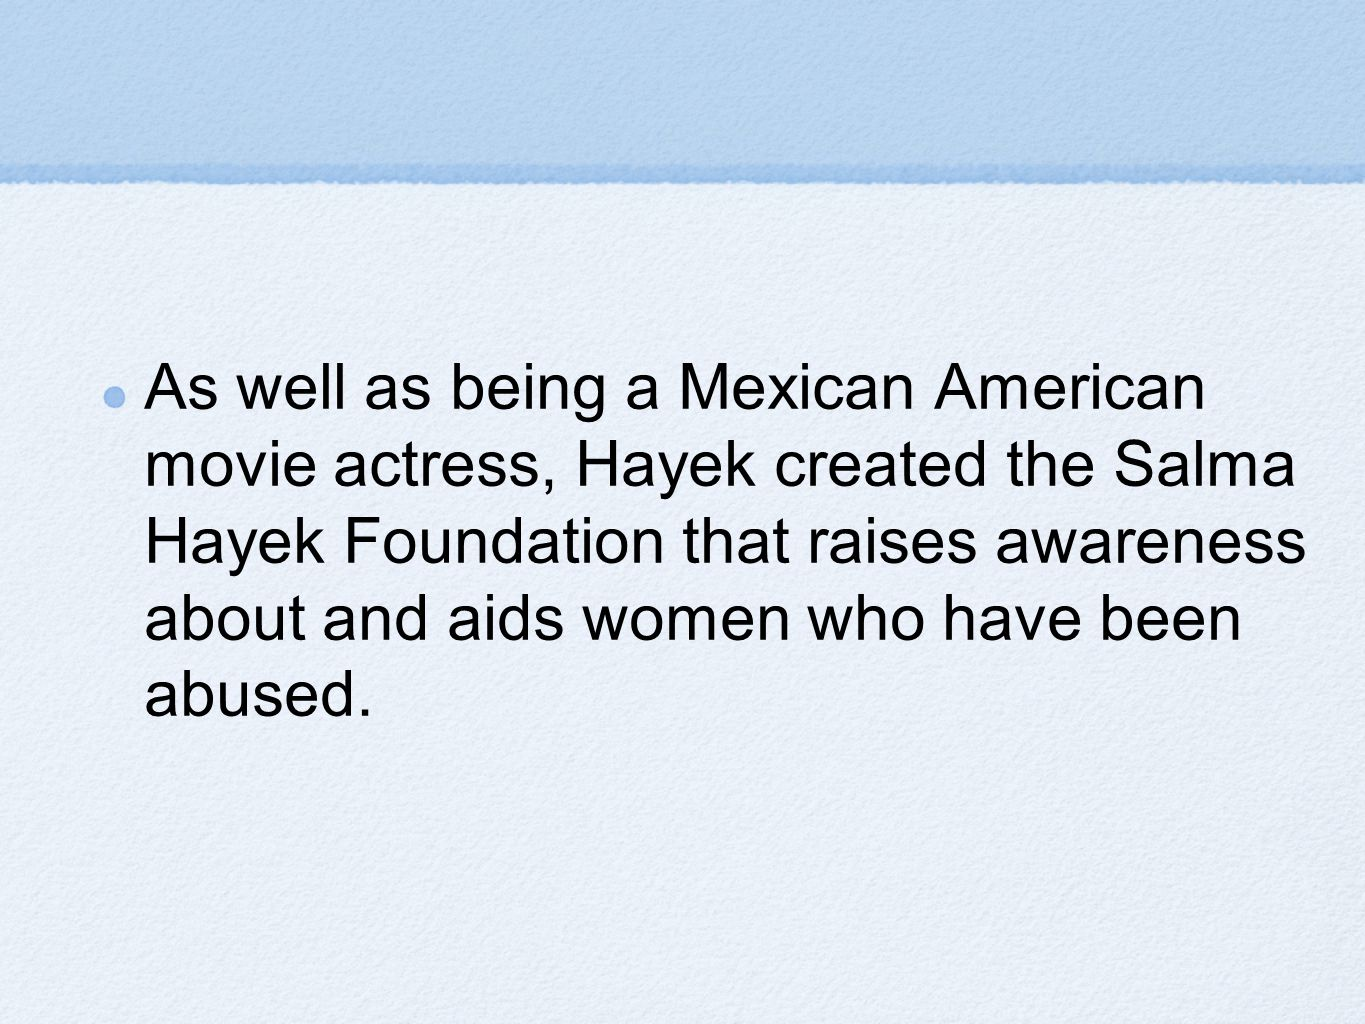 As well as being a Mexican American movie actress, Hayek created the Salma Hayek Foundation that raises awareness about and aids women who have been abused.